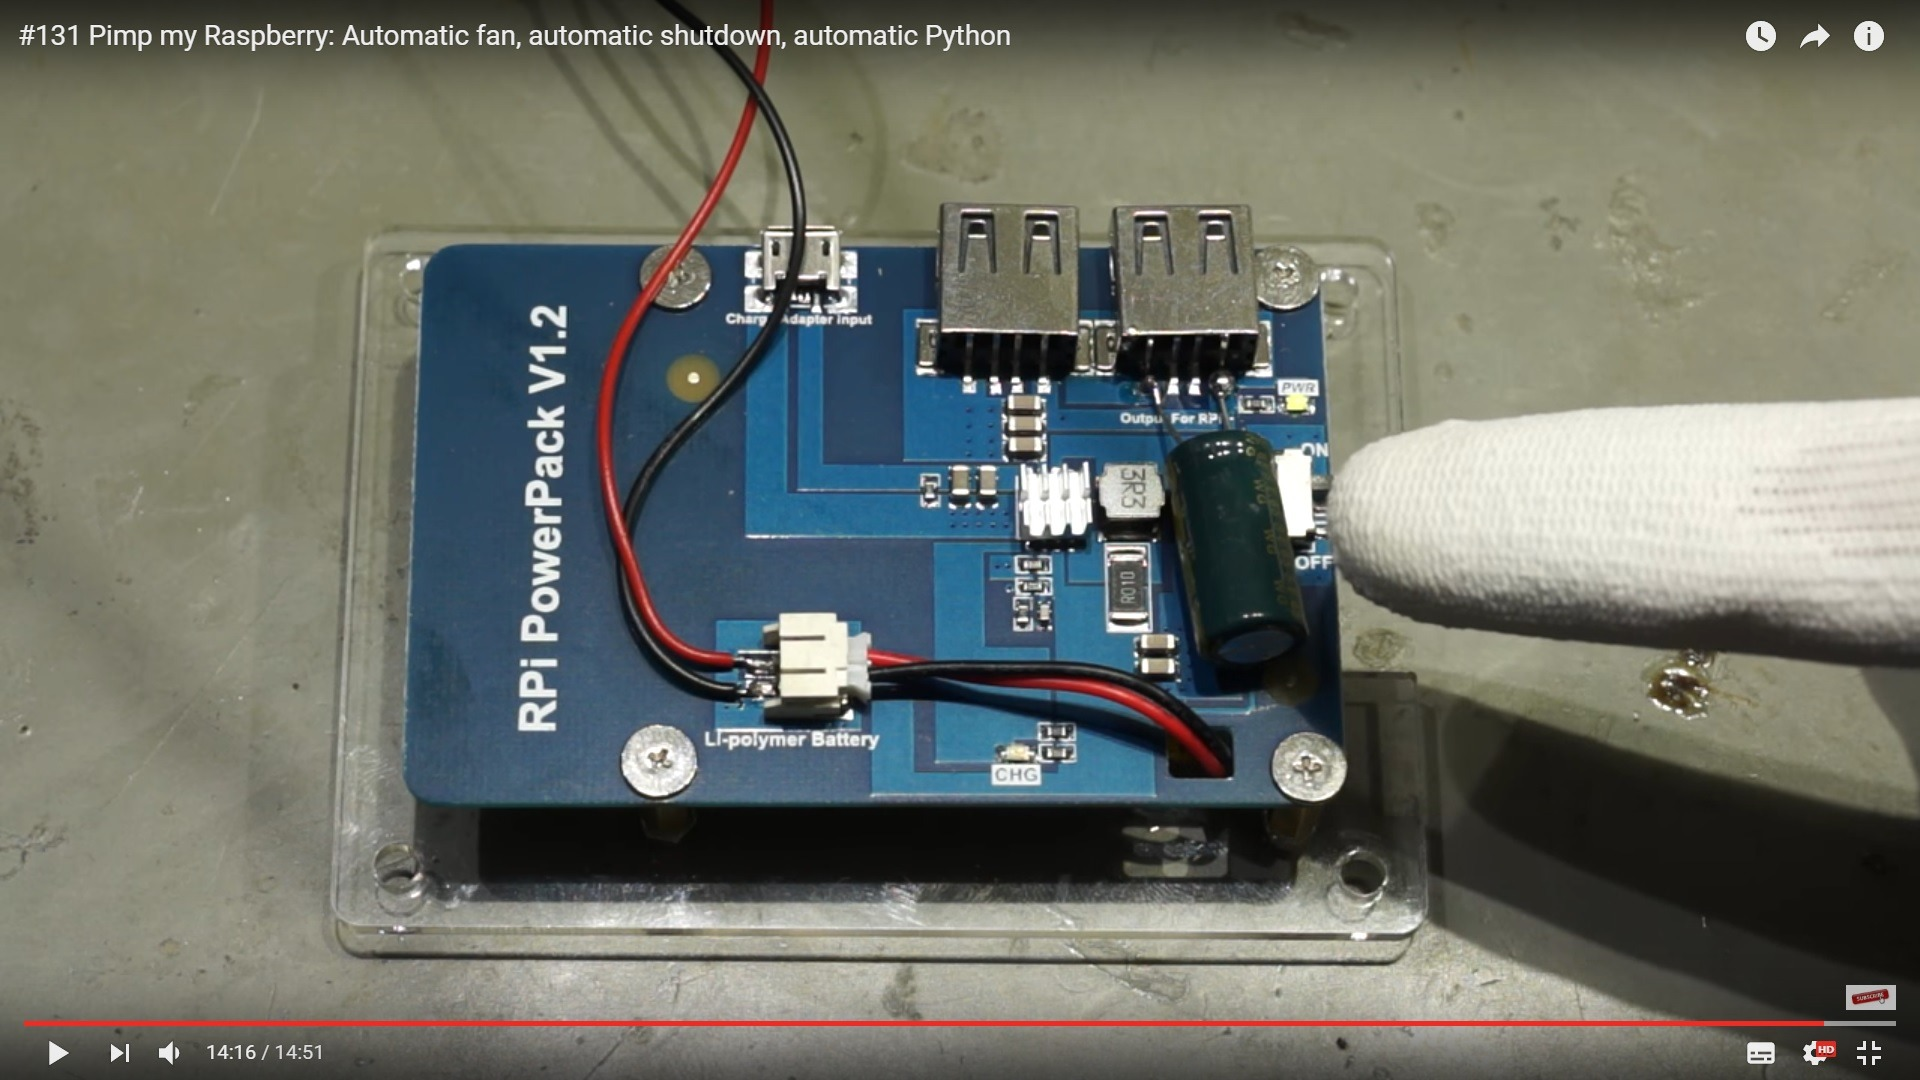 Raspberry Pi Zero Wifi Scargills Tech Blog Wiringpi Python Library Andreas Spiess Seems To Have Solved The Reset Issues With Your Ups Board In His Latest Video Adding A Big Capacitor Usb Port